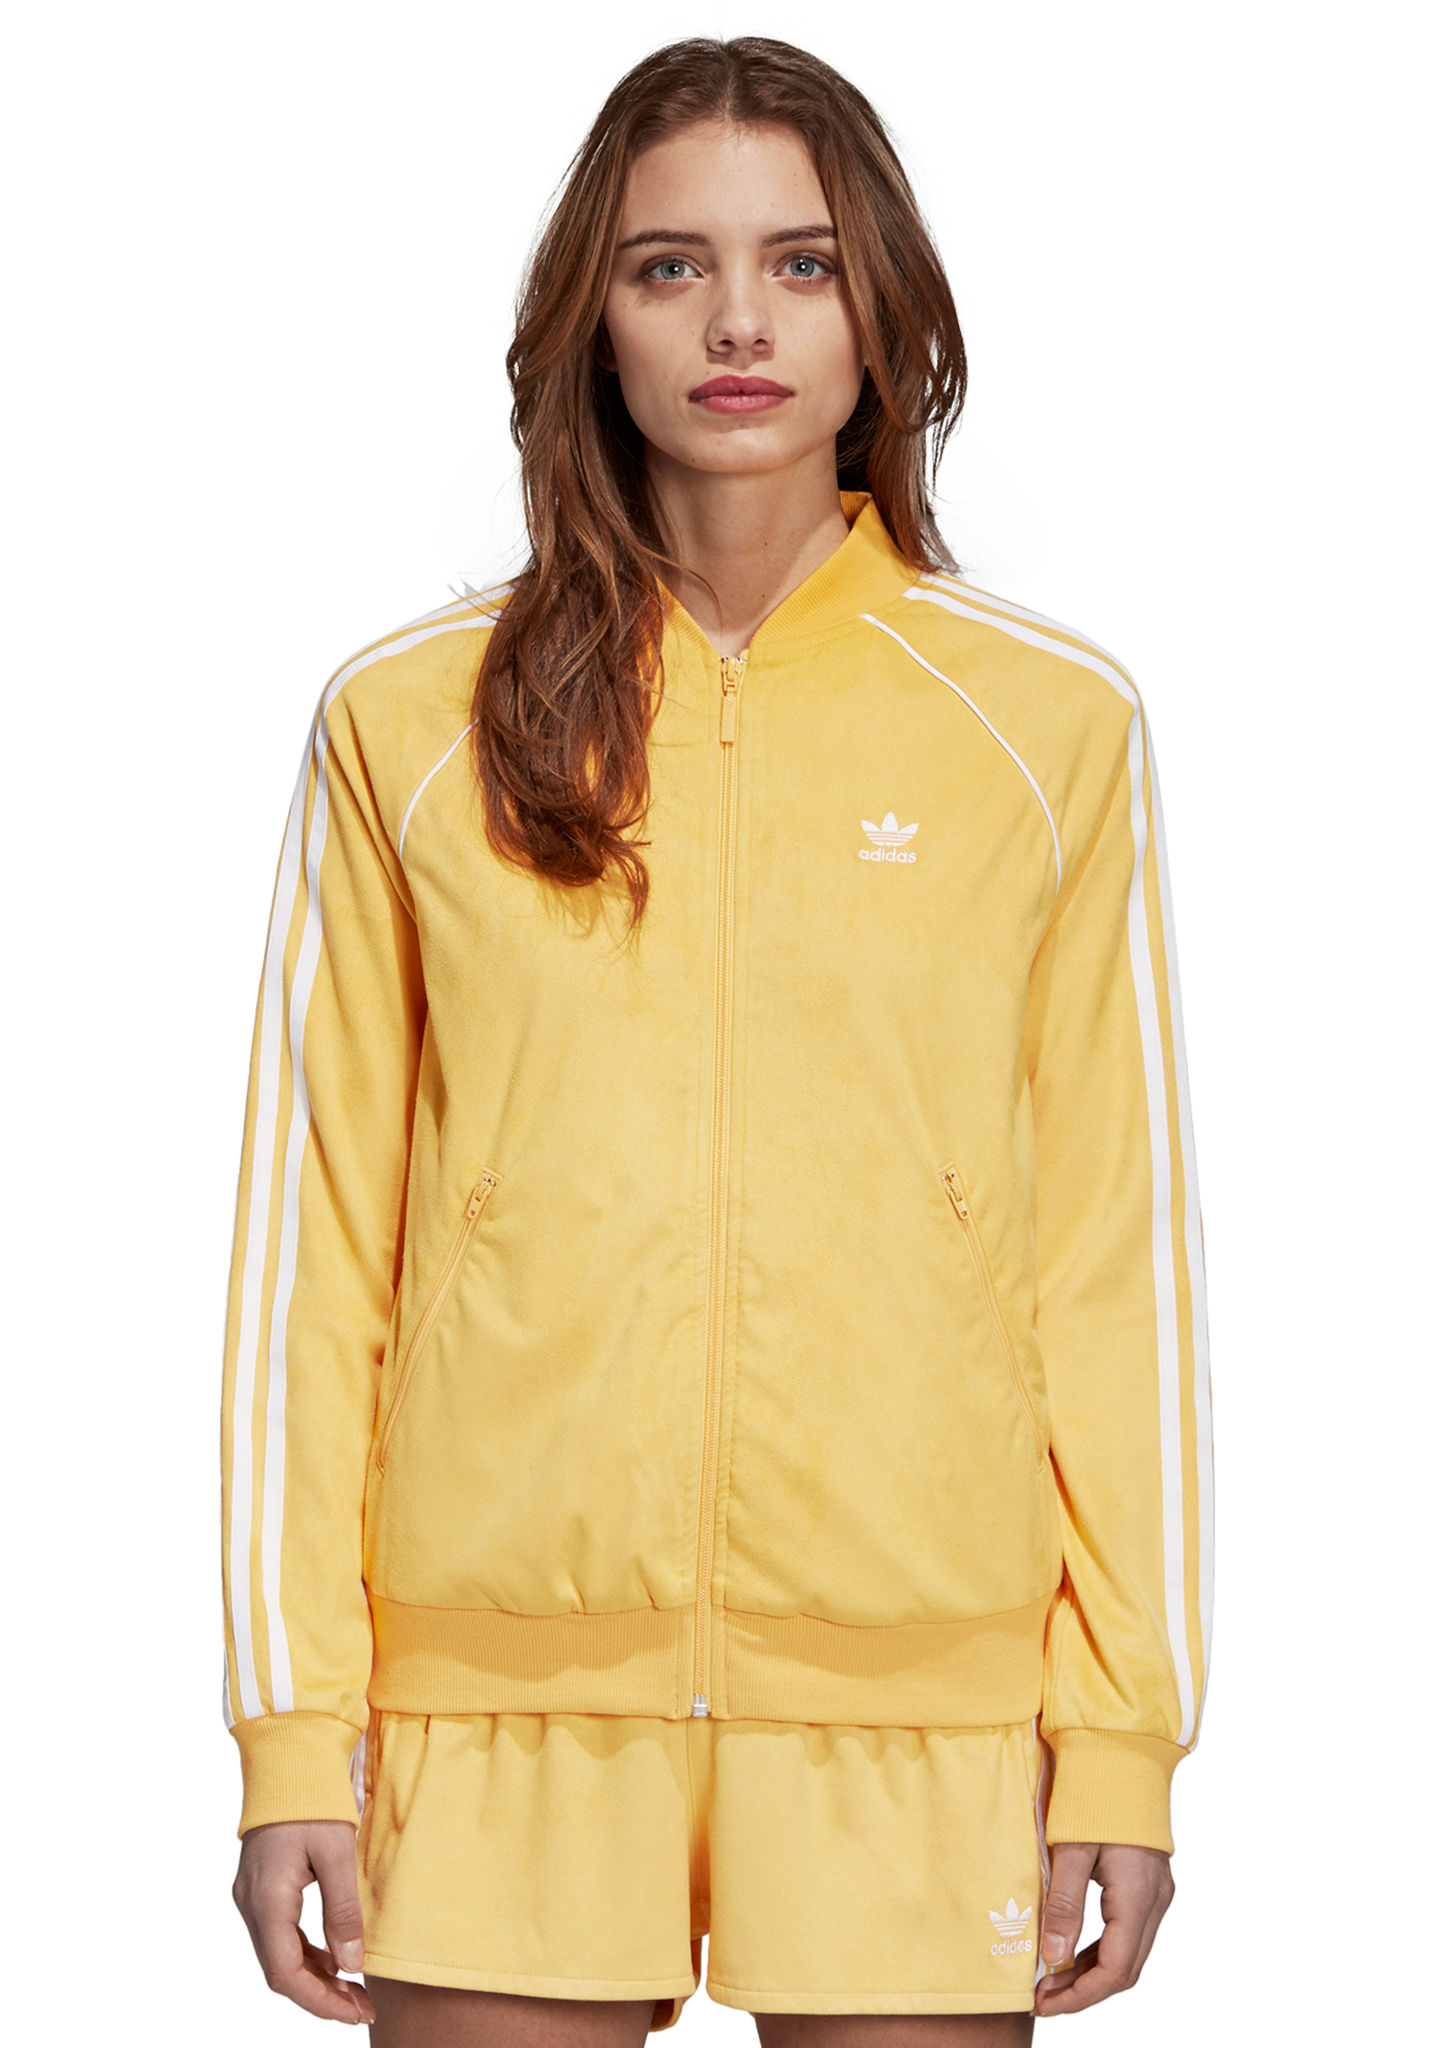 Veste survetement adidas jaune